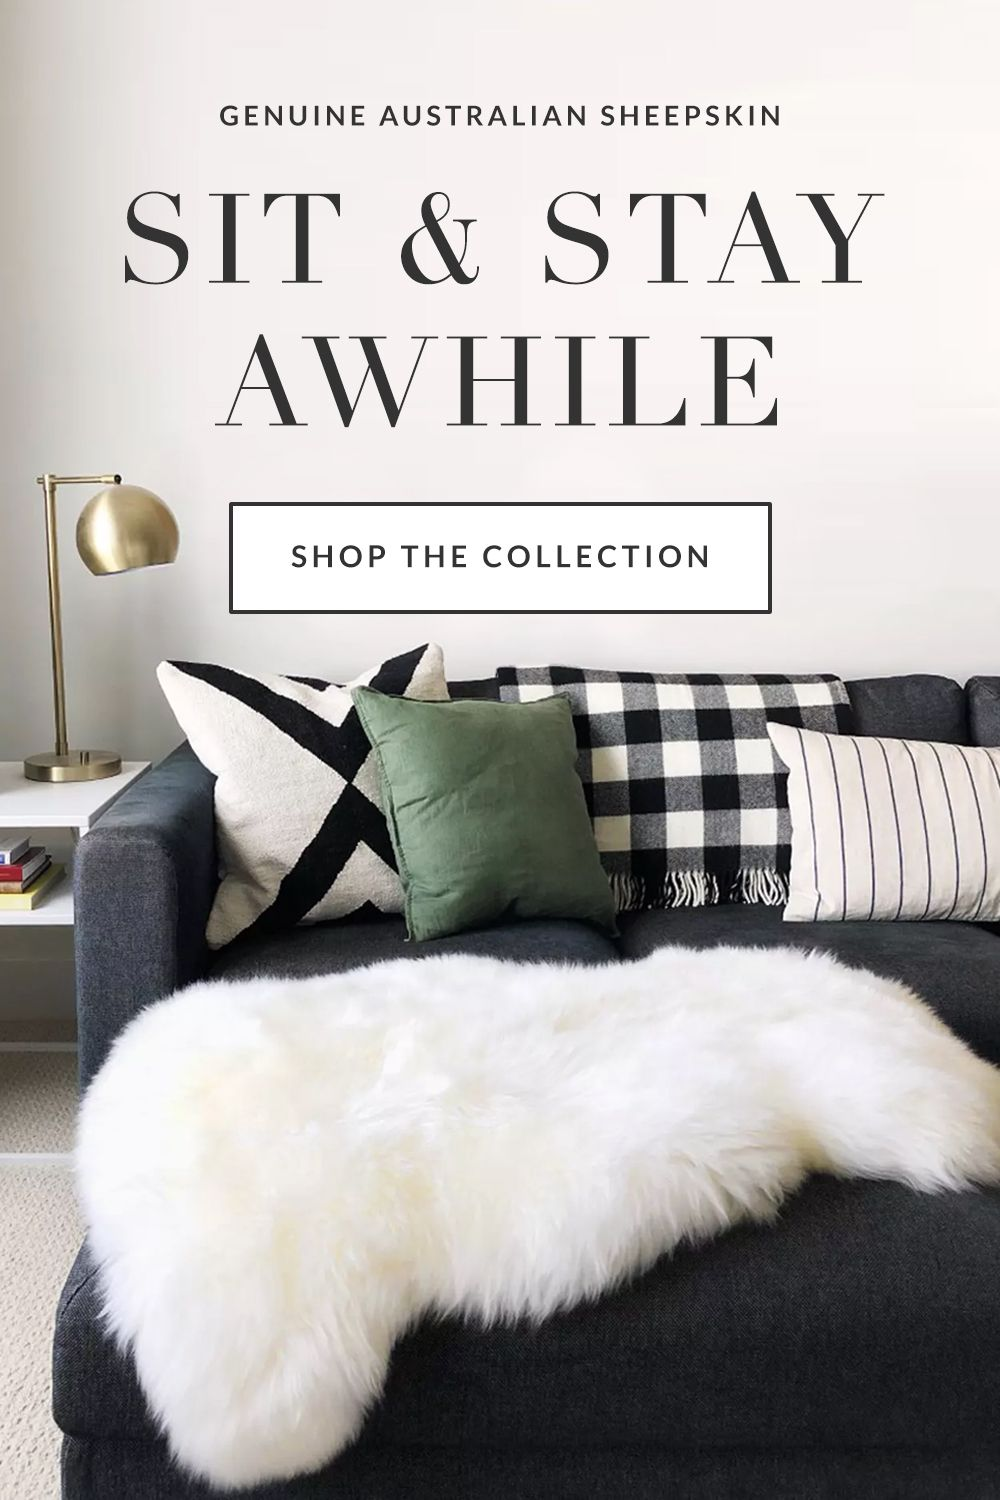 Featured Sheepskin Rug Style Guide In 2020 Blue Couch Living Room Sheepskin Rug Rental Decorating #sheepskin #rug #living #room